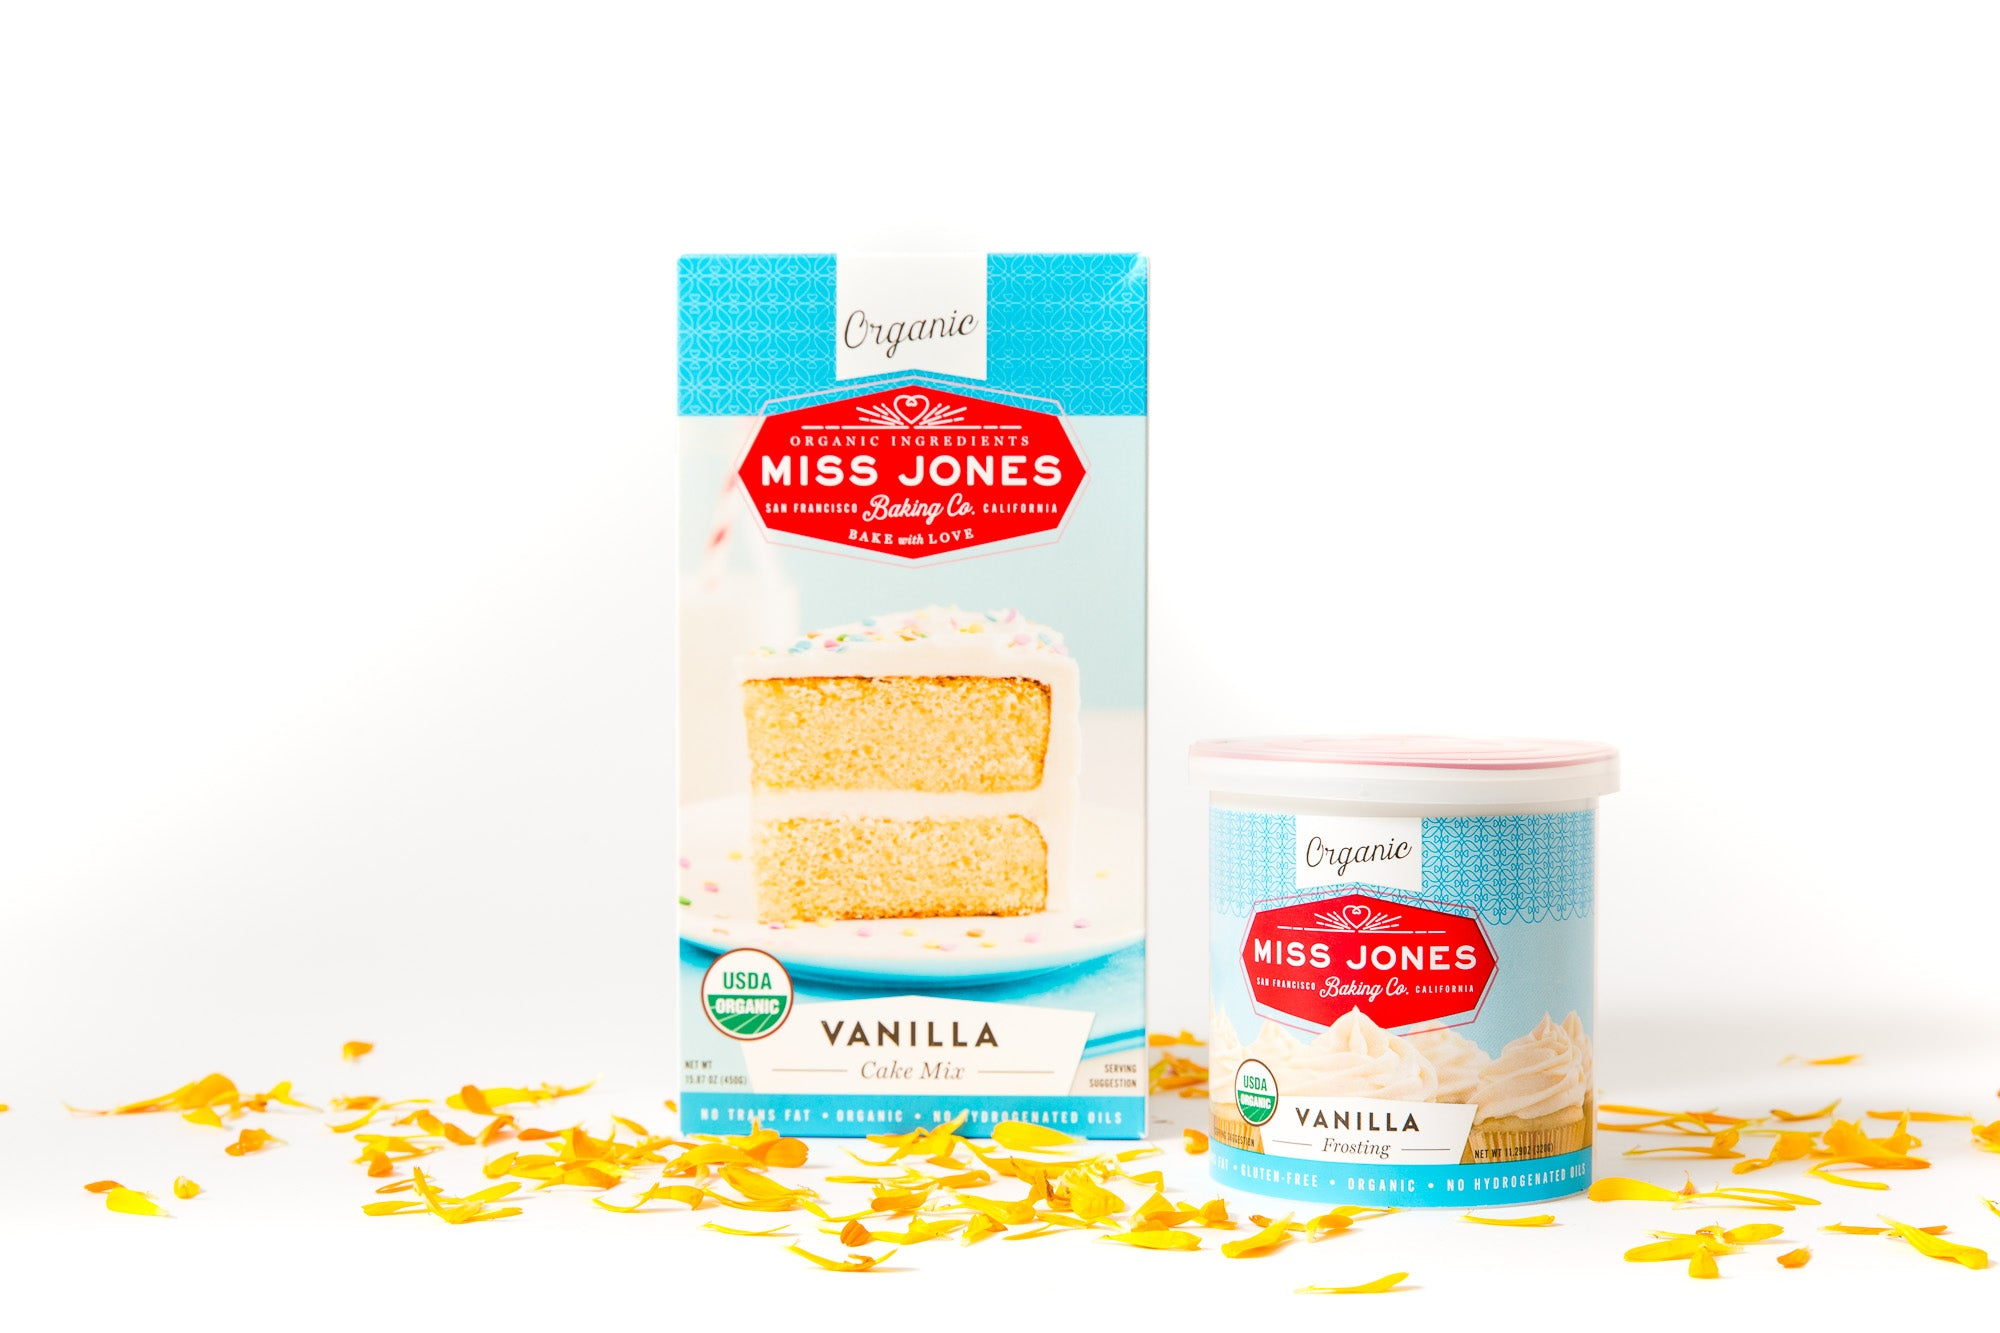 Image of a box of Miss Jones Vanilla Cake Mix and a jar of Miss Jones Vanilla Frosting surrounded by yellow flower petals for Miss Jones Baking Co Floral Bloom Layer Cake